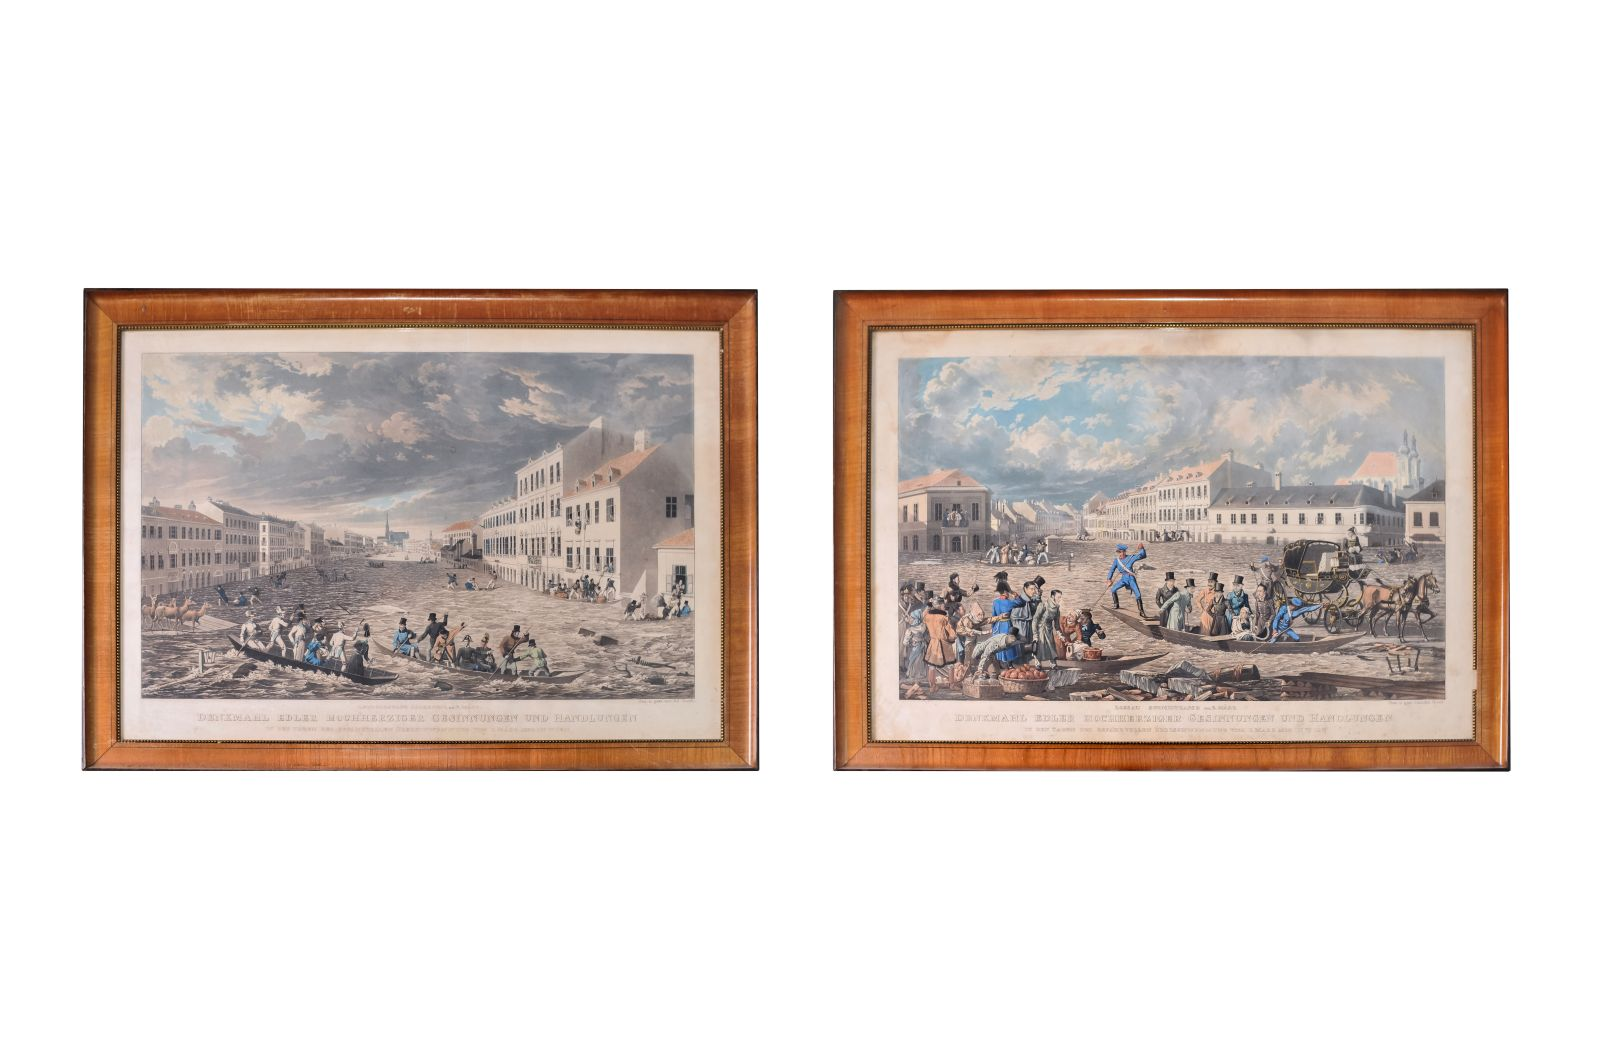 #79 Eduard Gurk (1801-1841) depictions from the days of the dangerous flooding of Vienna |Eduard Gurk (1801-1841) Darstellungen aus den Tagen der gefahrvollen Überschwemmung Wiens Image